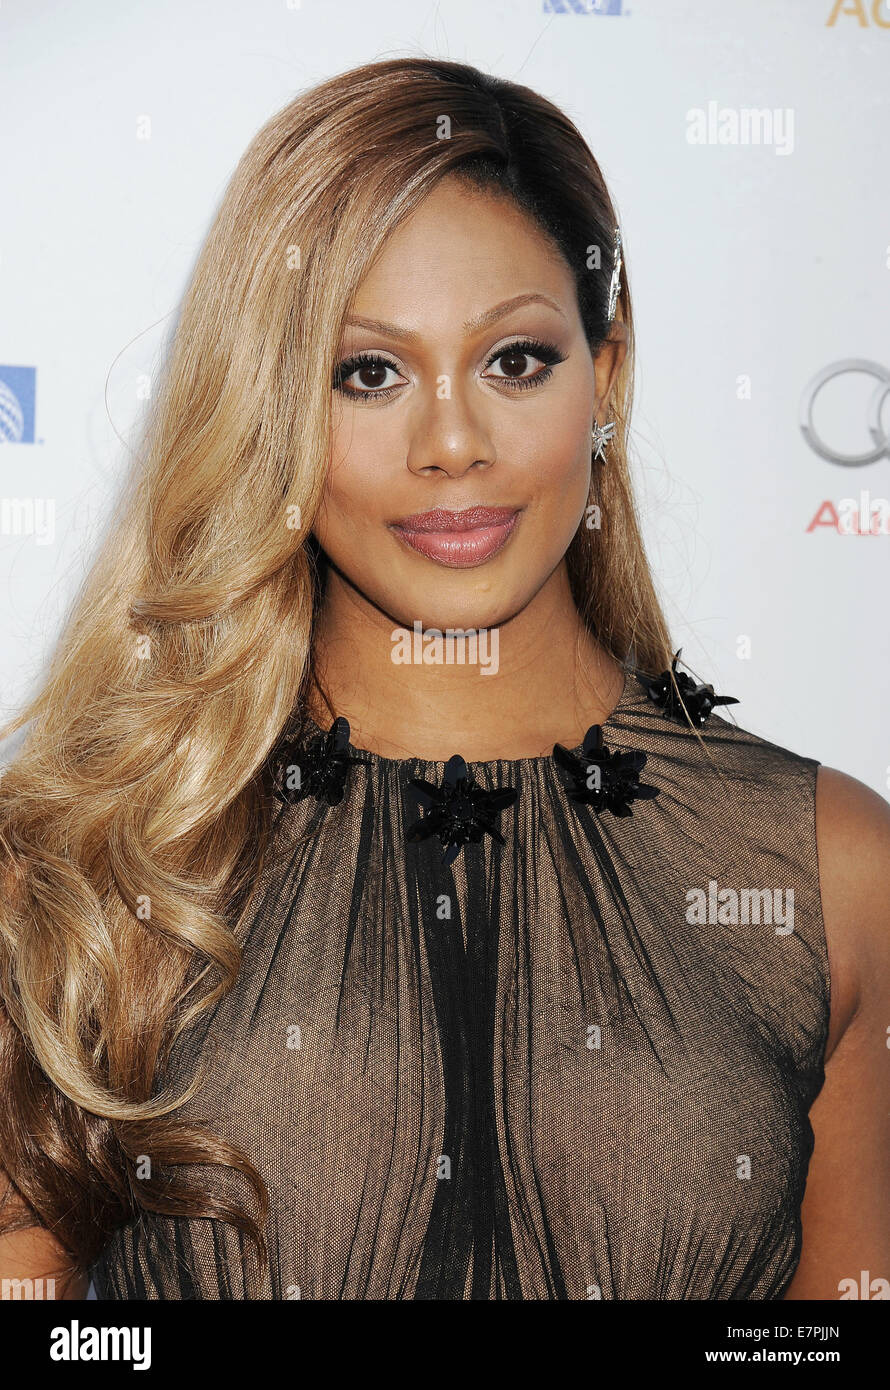 Laverne Cox nudes (92 photos), Topless, Is a cute, Selfie, cameltoe 2006